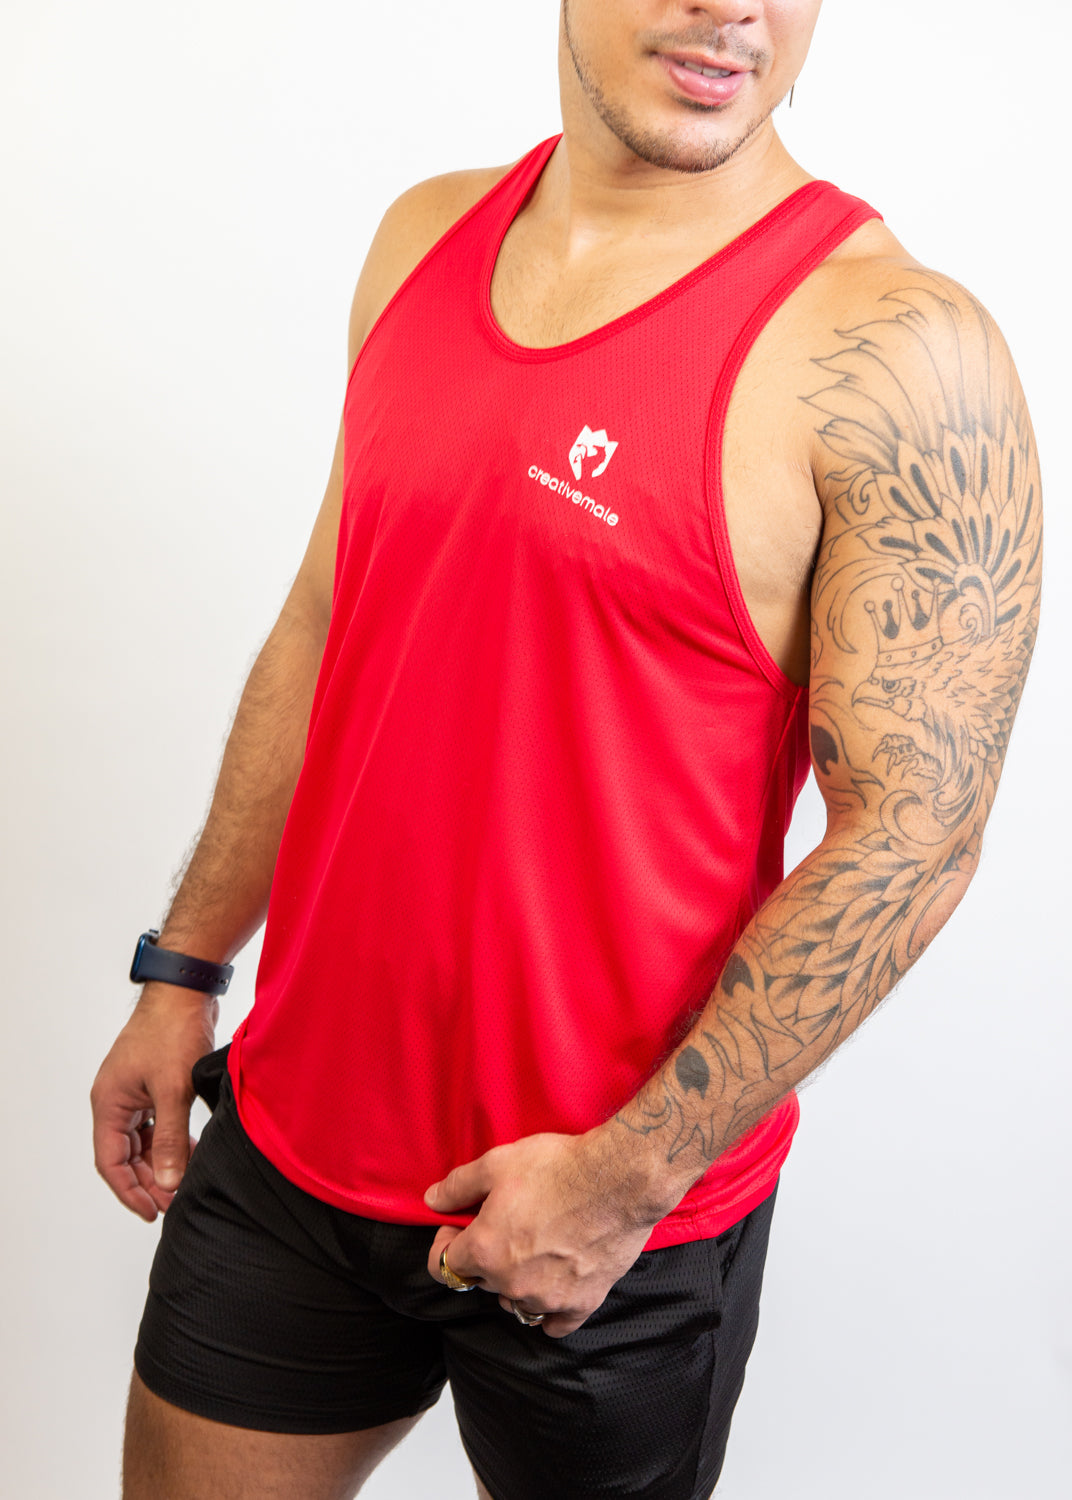 CREATIVE MALE GYM TANK - 5 Colors to Choose